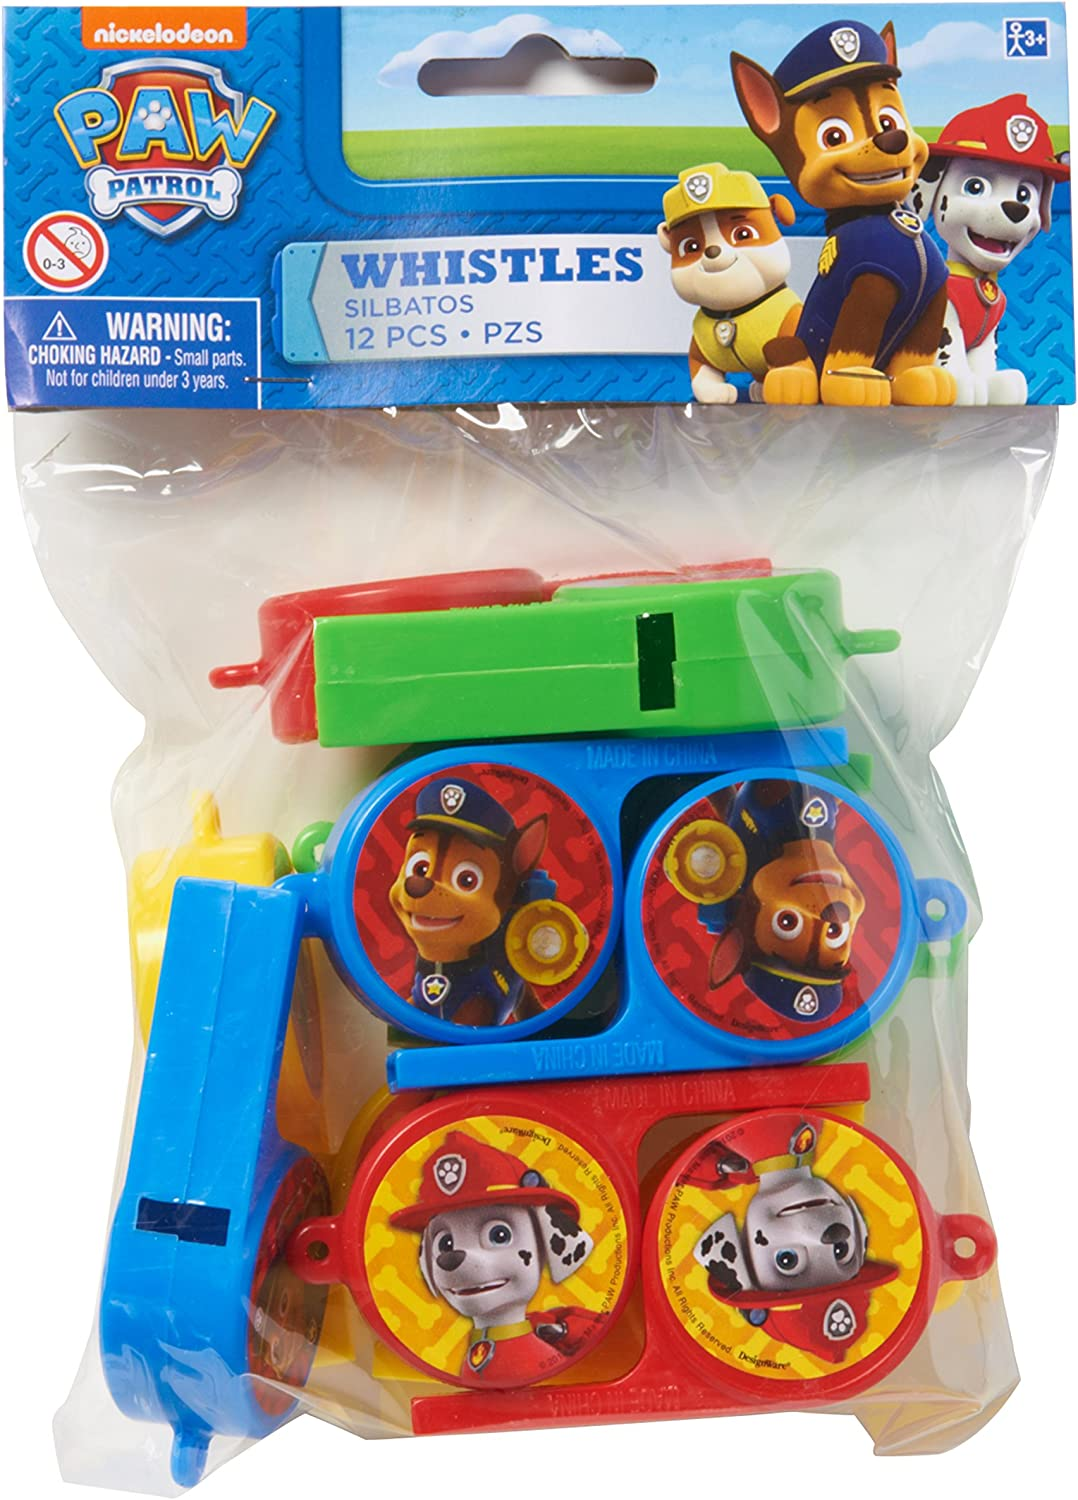 5305124 12Count Whistles amscan American Greetings Paw Patrol Party Supplies